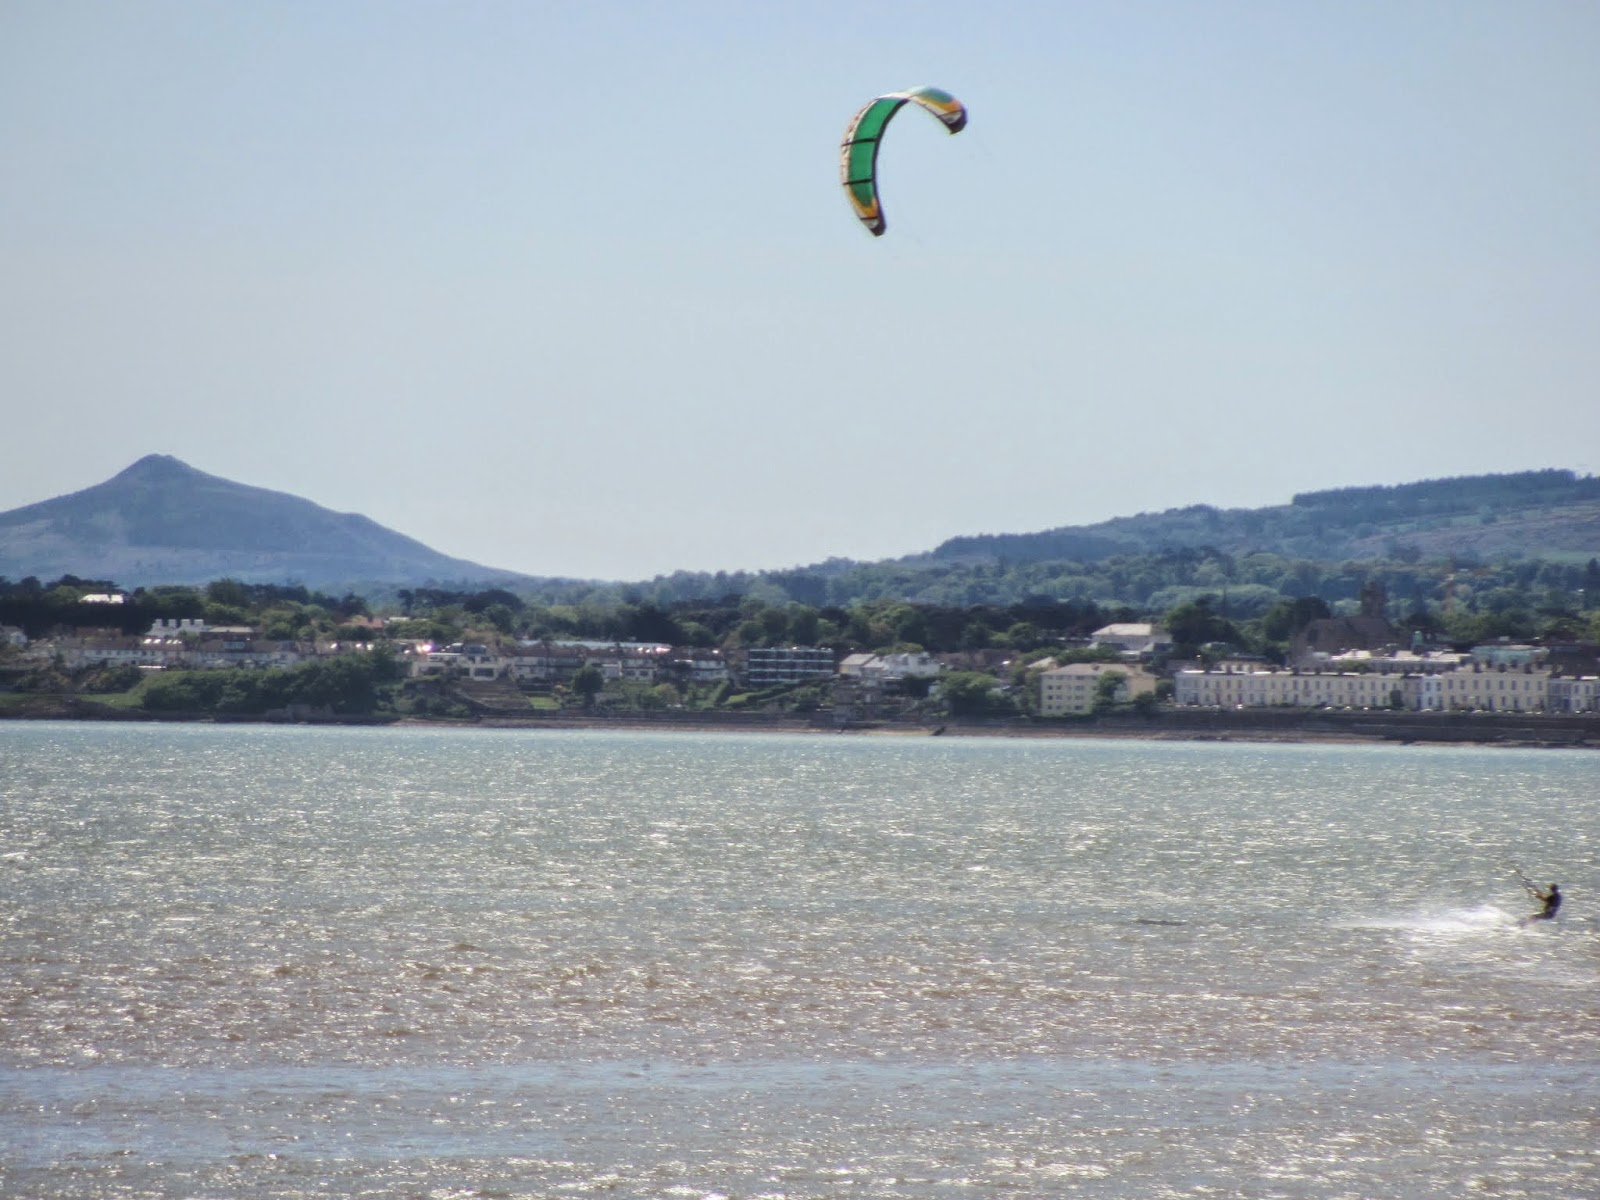 Kitesurfer on Dublin Bay